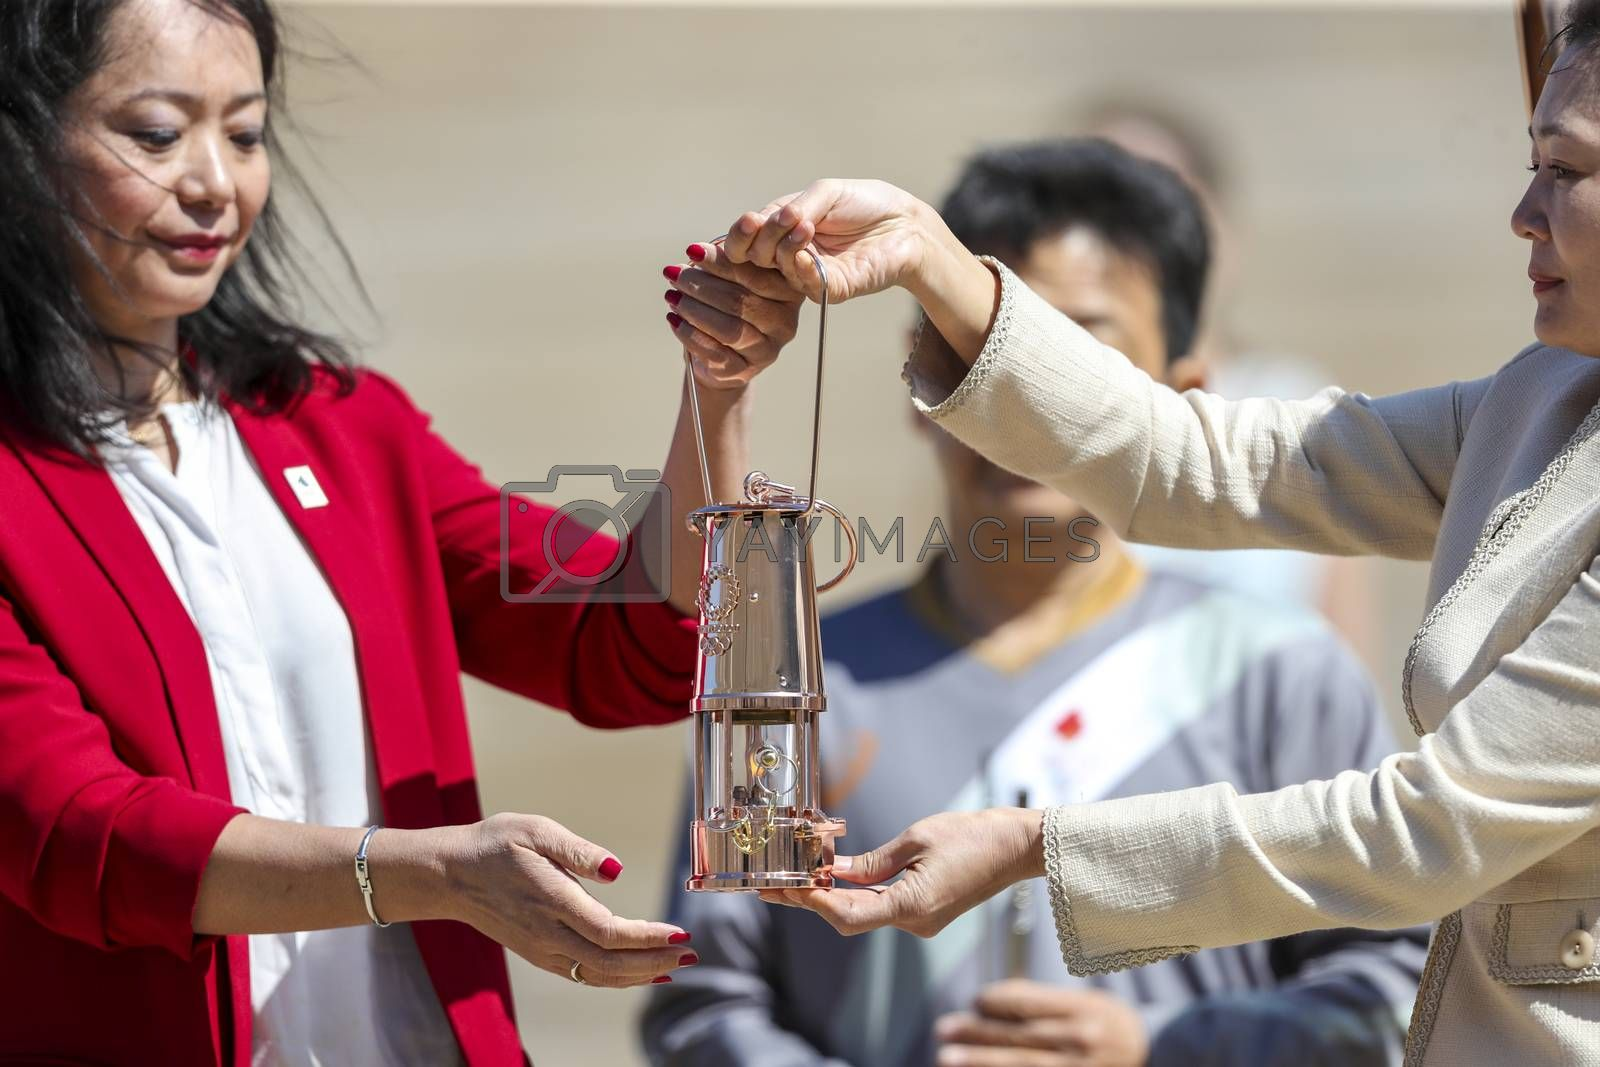 Athens, Greece - March 19, 2020: Olympic Flame handover ceremony for the Tokyo 2020 Summer Olympic Games at the Panathenaic Kallimarmaro Stadium